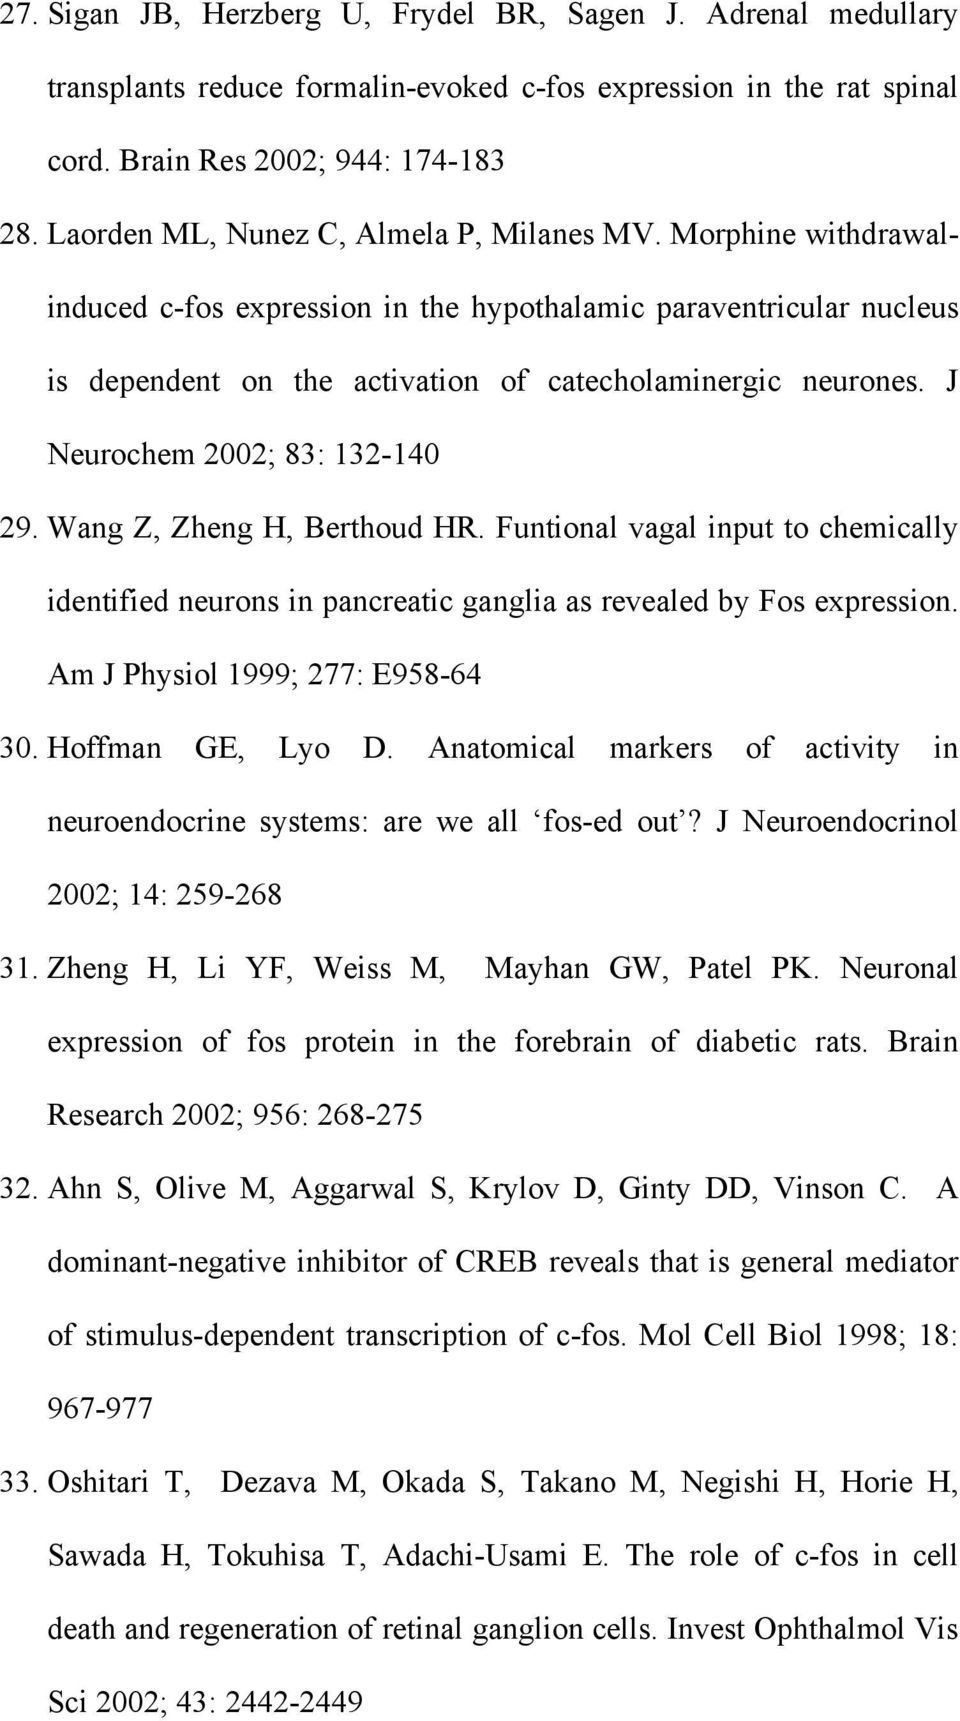 J Neurochem 2002; 83: 132-140 29. Wang Z, Zheng H, Berthoud HR. Funtional vagal input to chemically identified neurons in pancreatic ganglia as revealed by Fos expression.